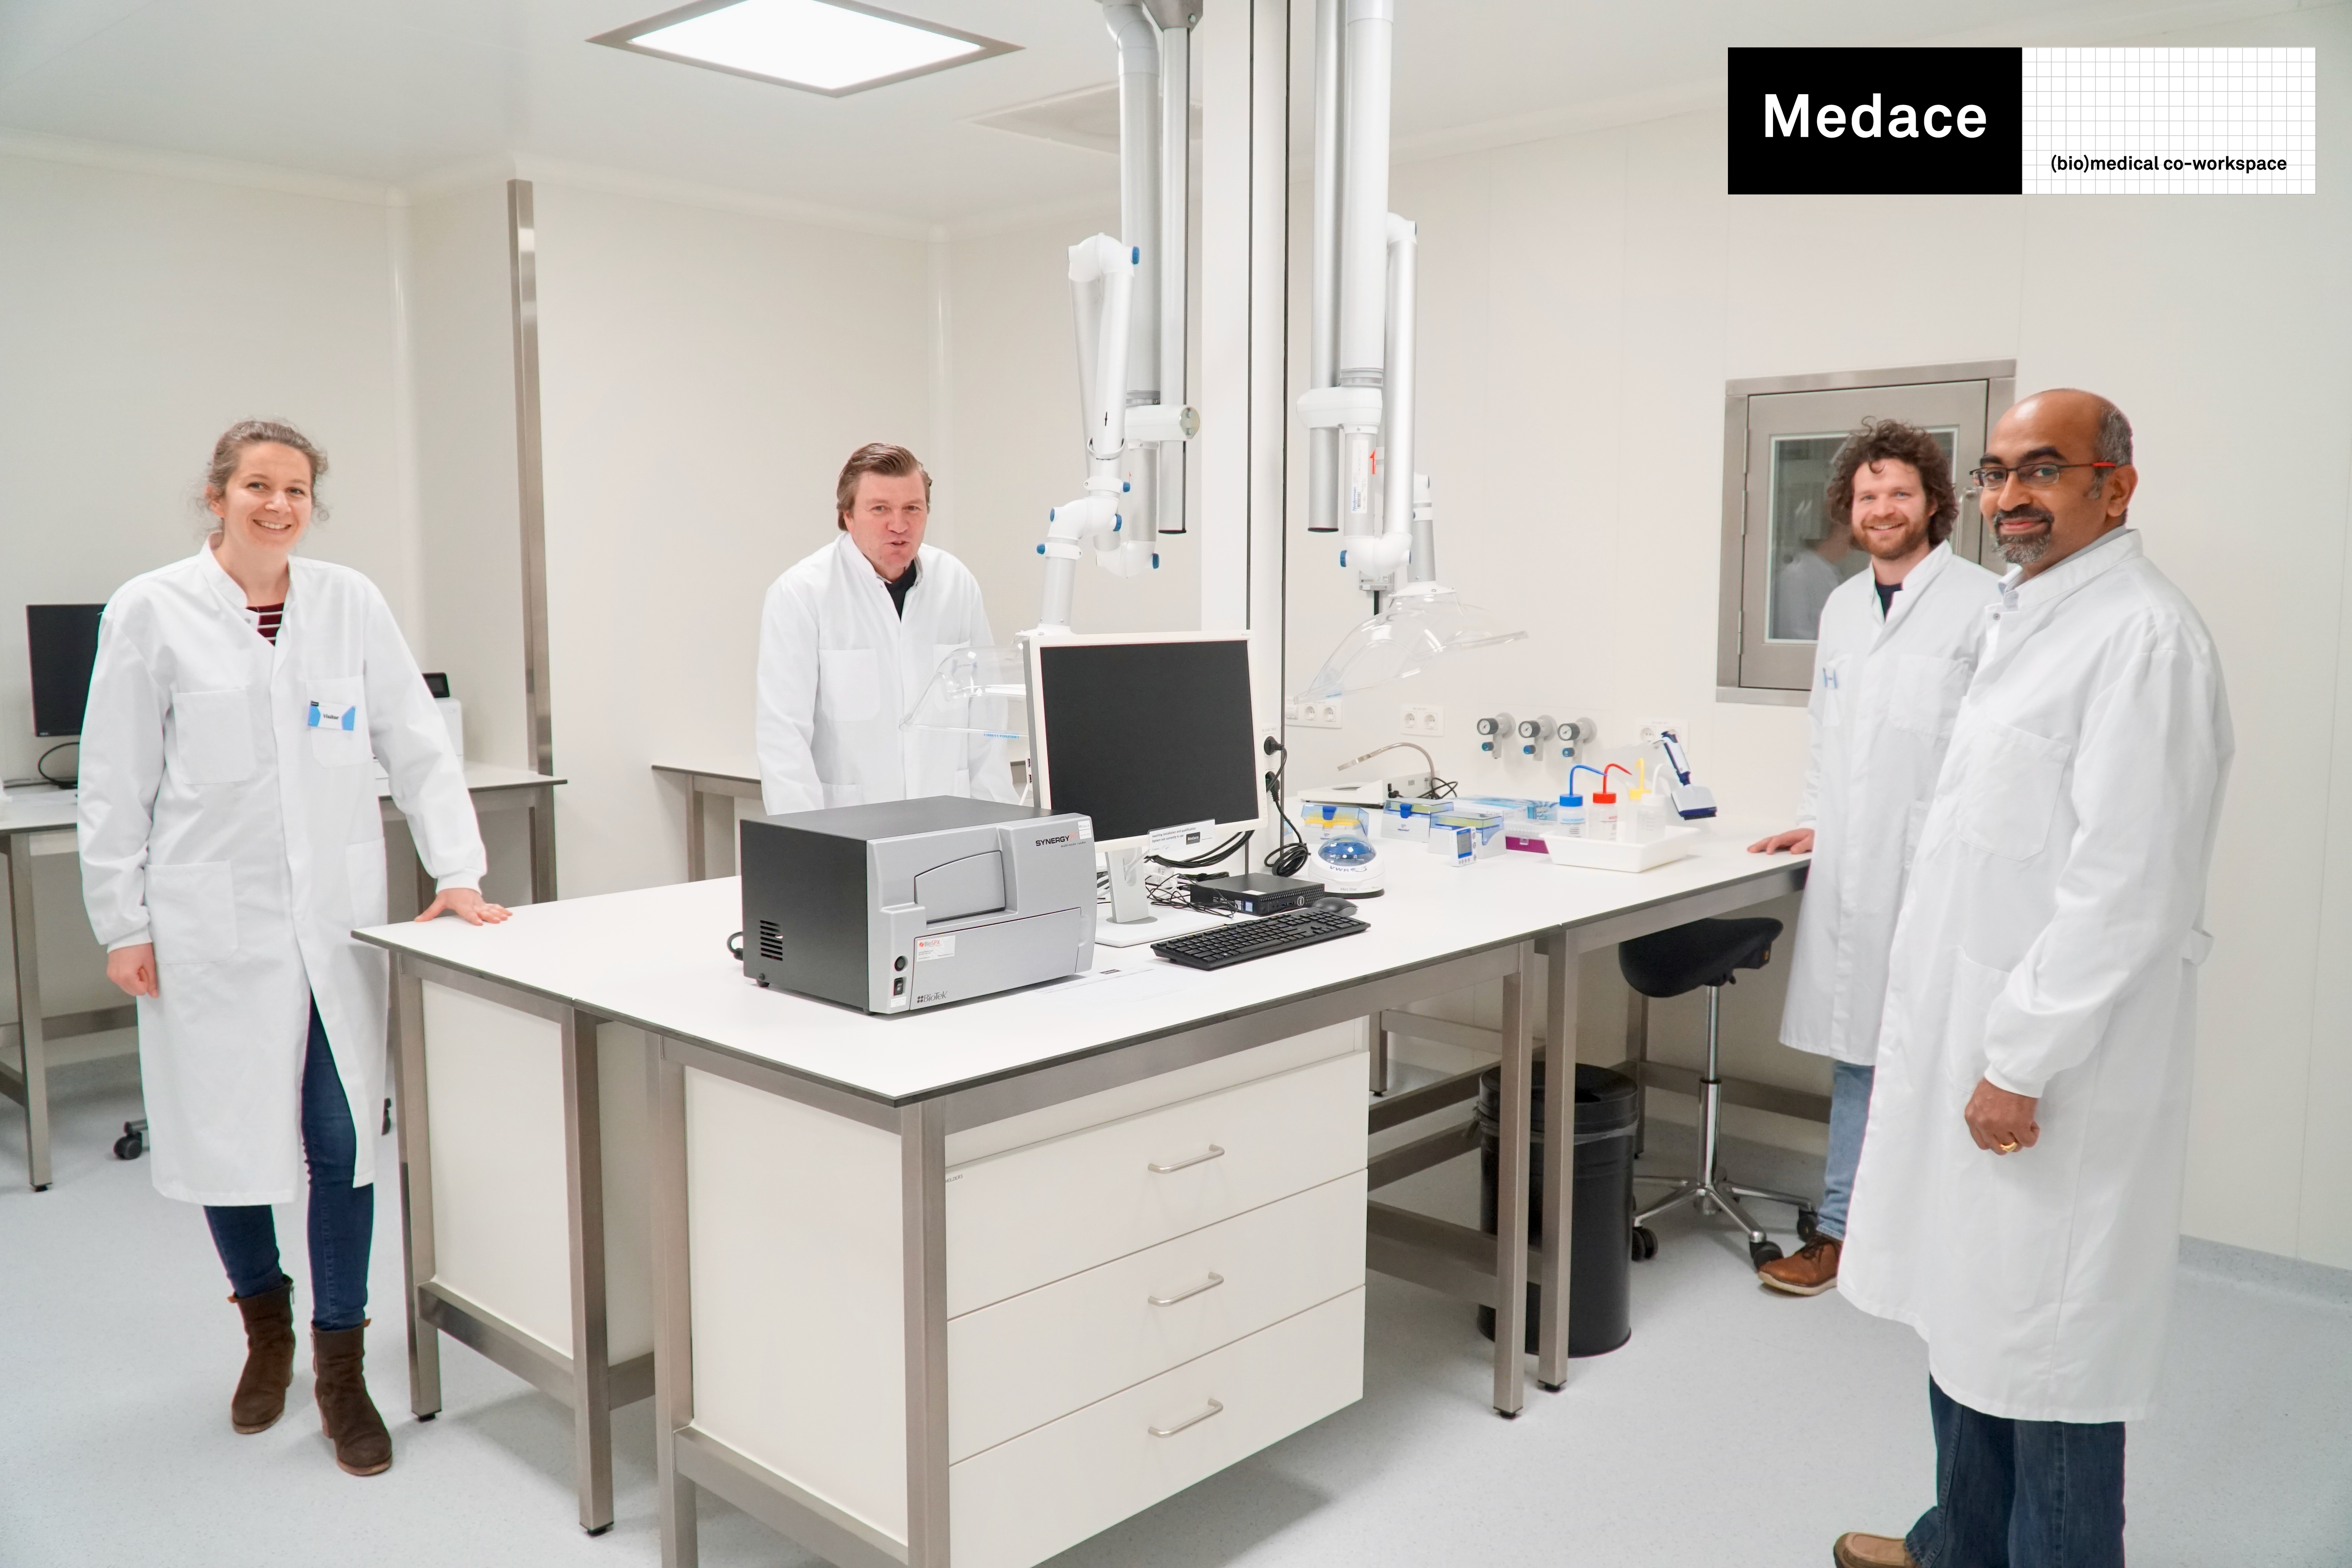 Medace lowers the threshold for researchers of RegMed XB